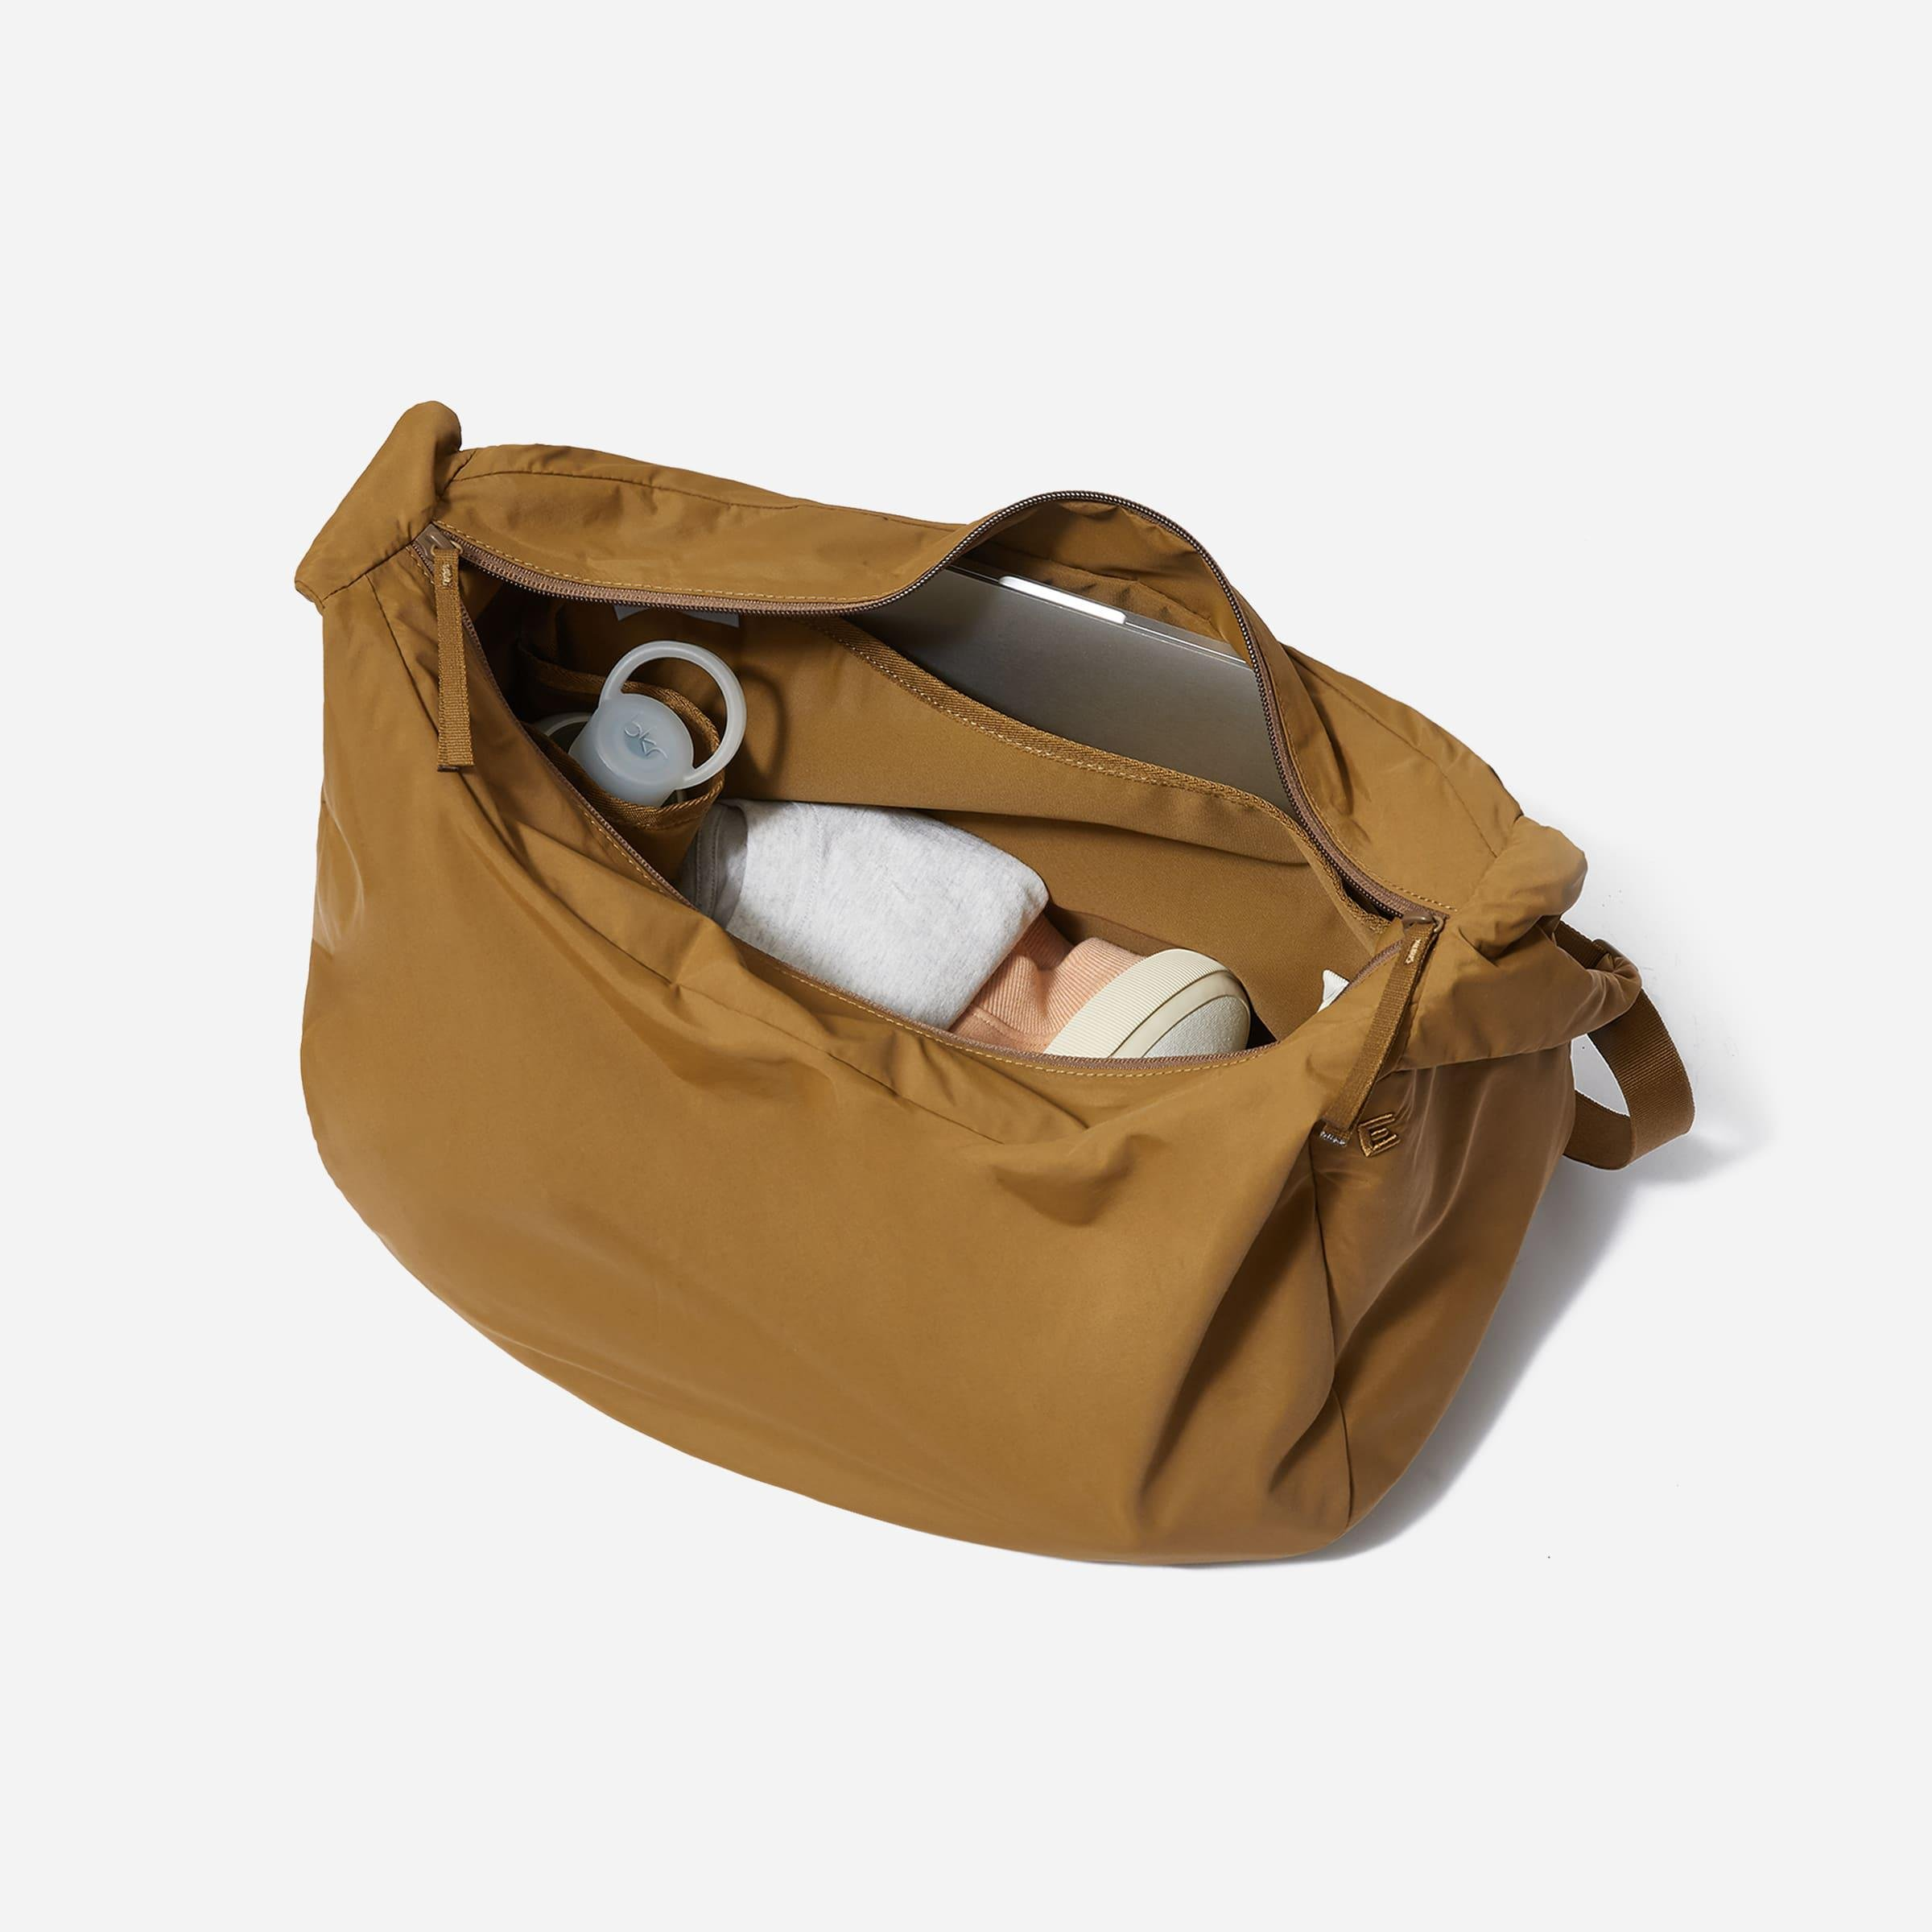 The Oversized Carryall 1